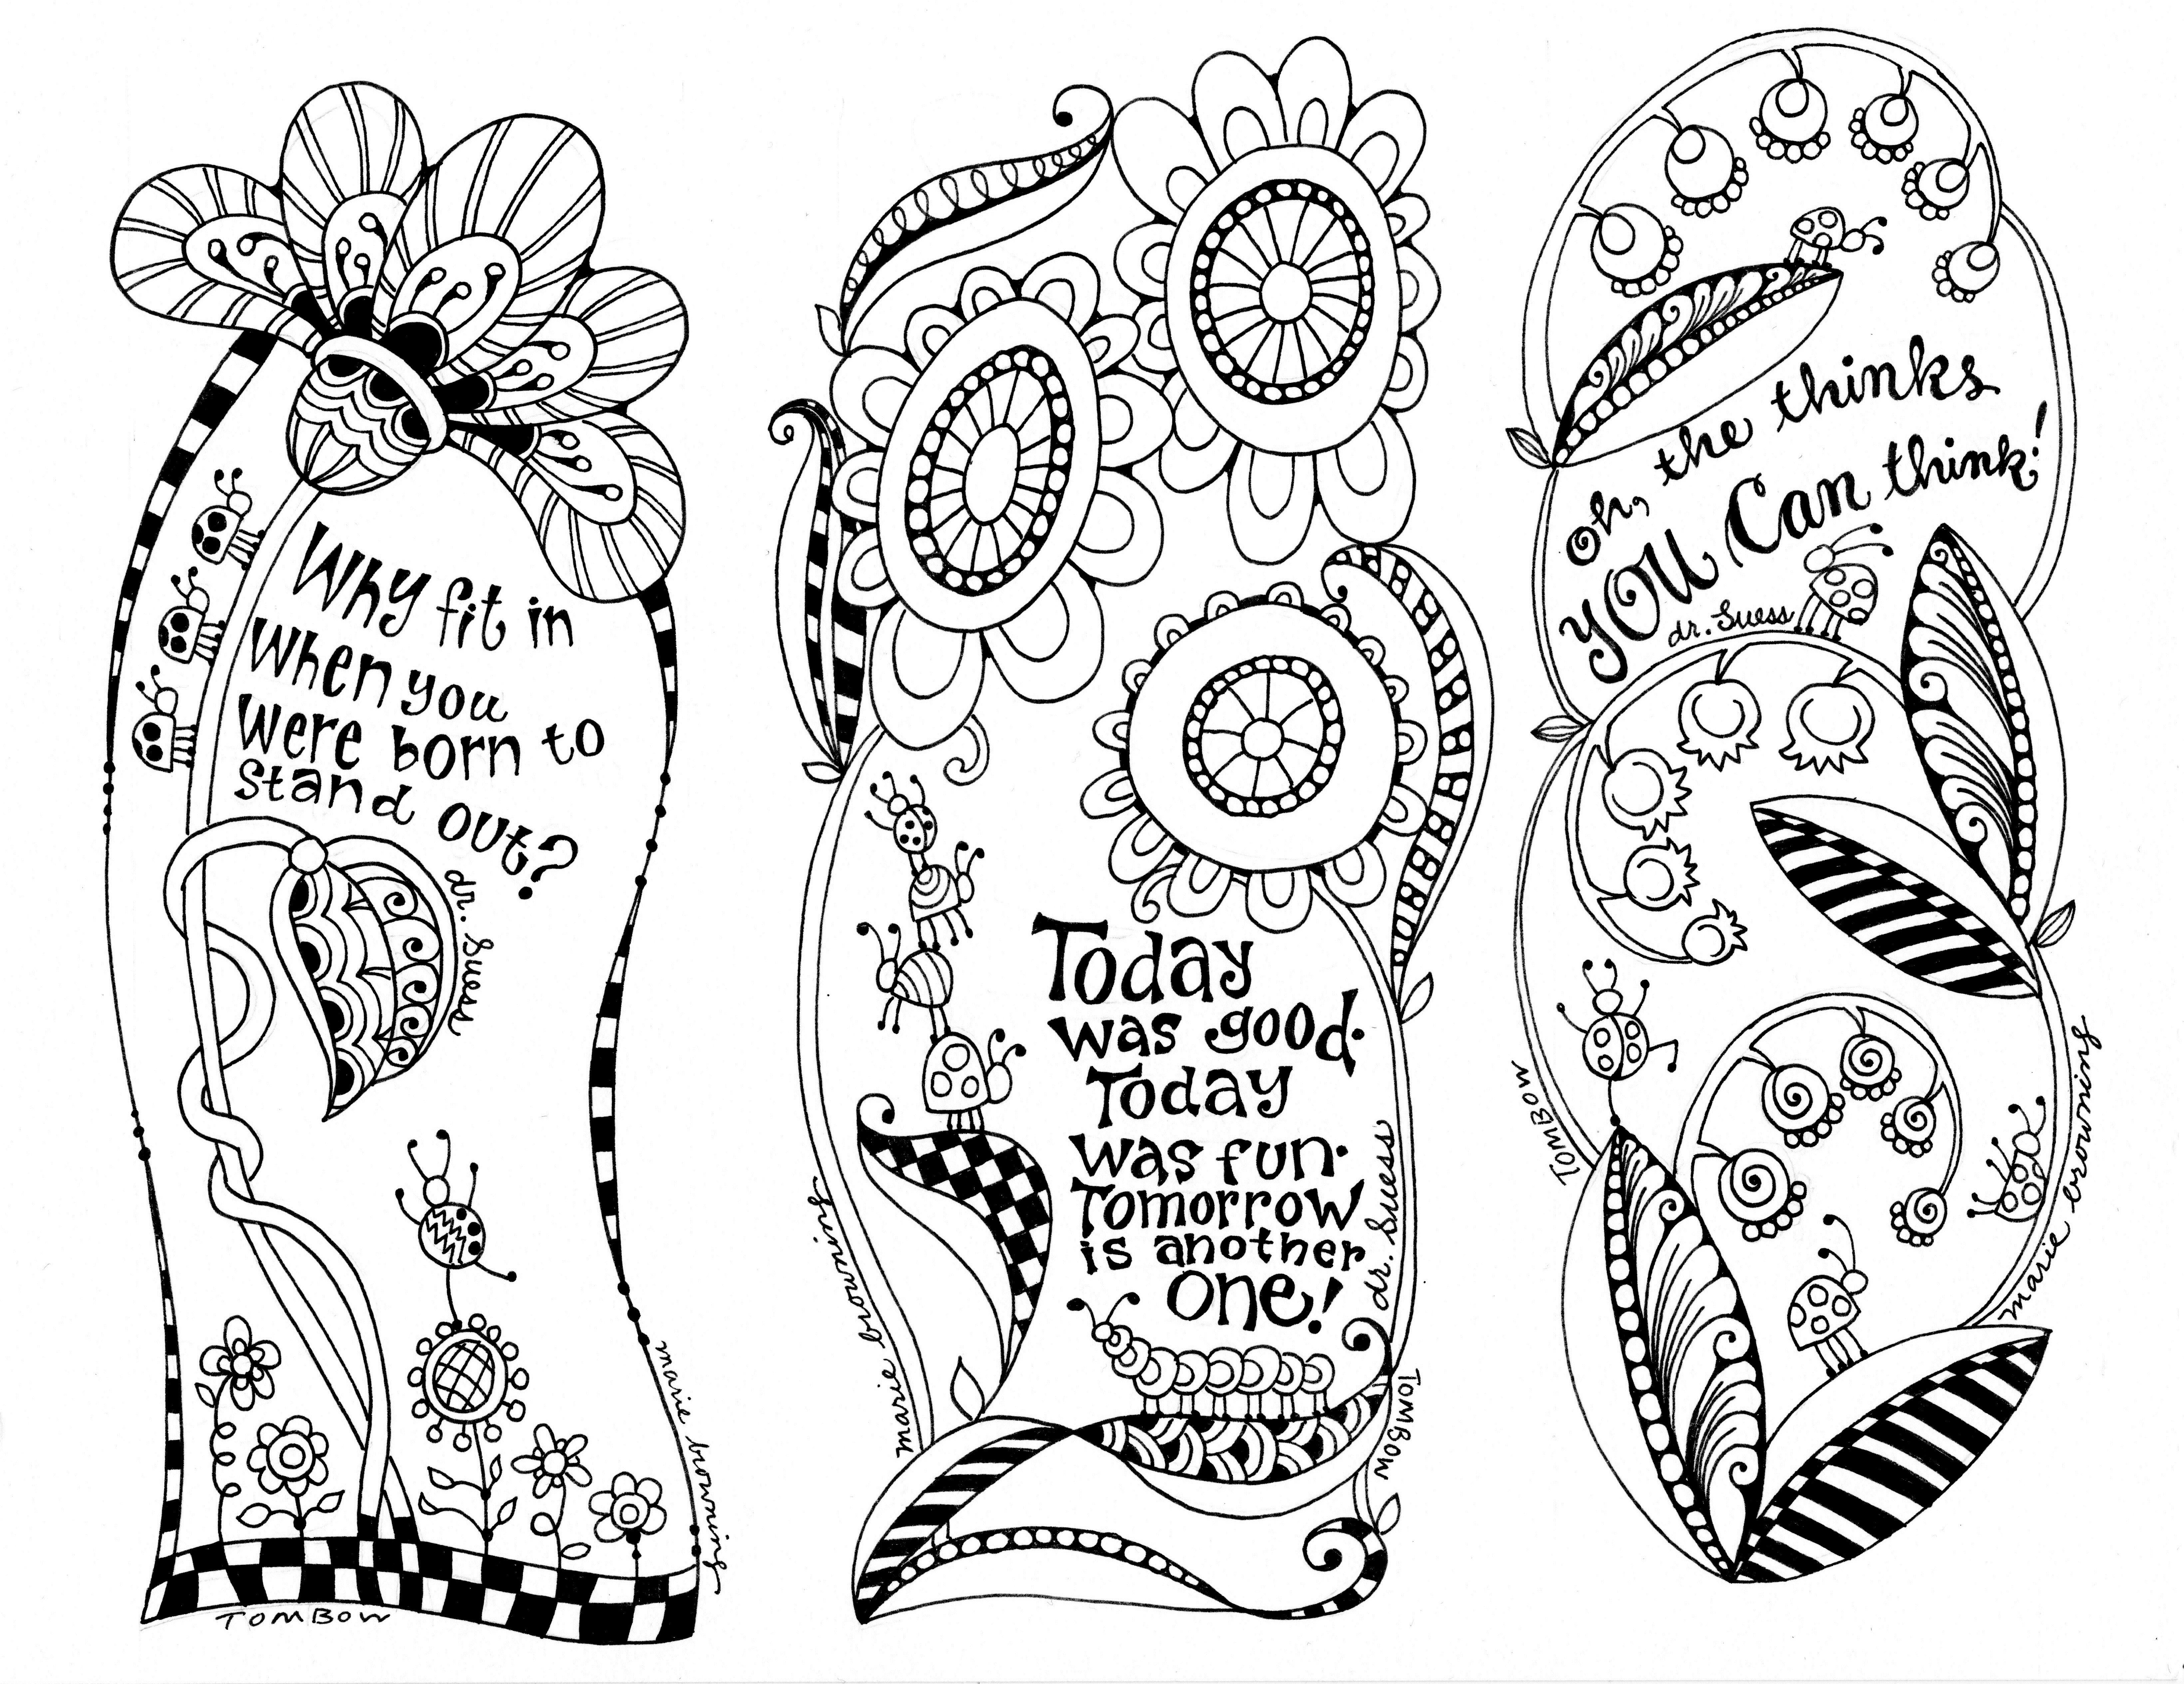 Dr Seuss Coloring Page illustrated